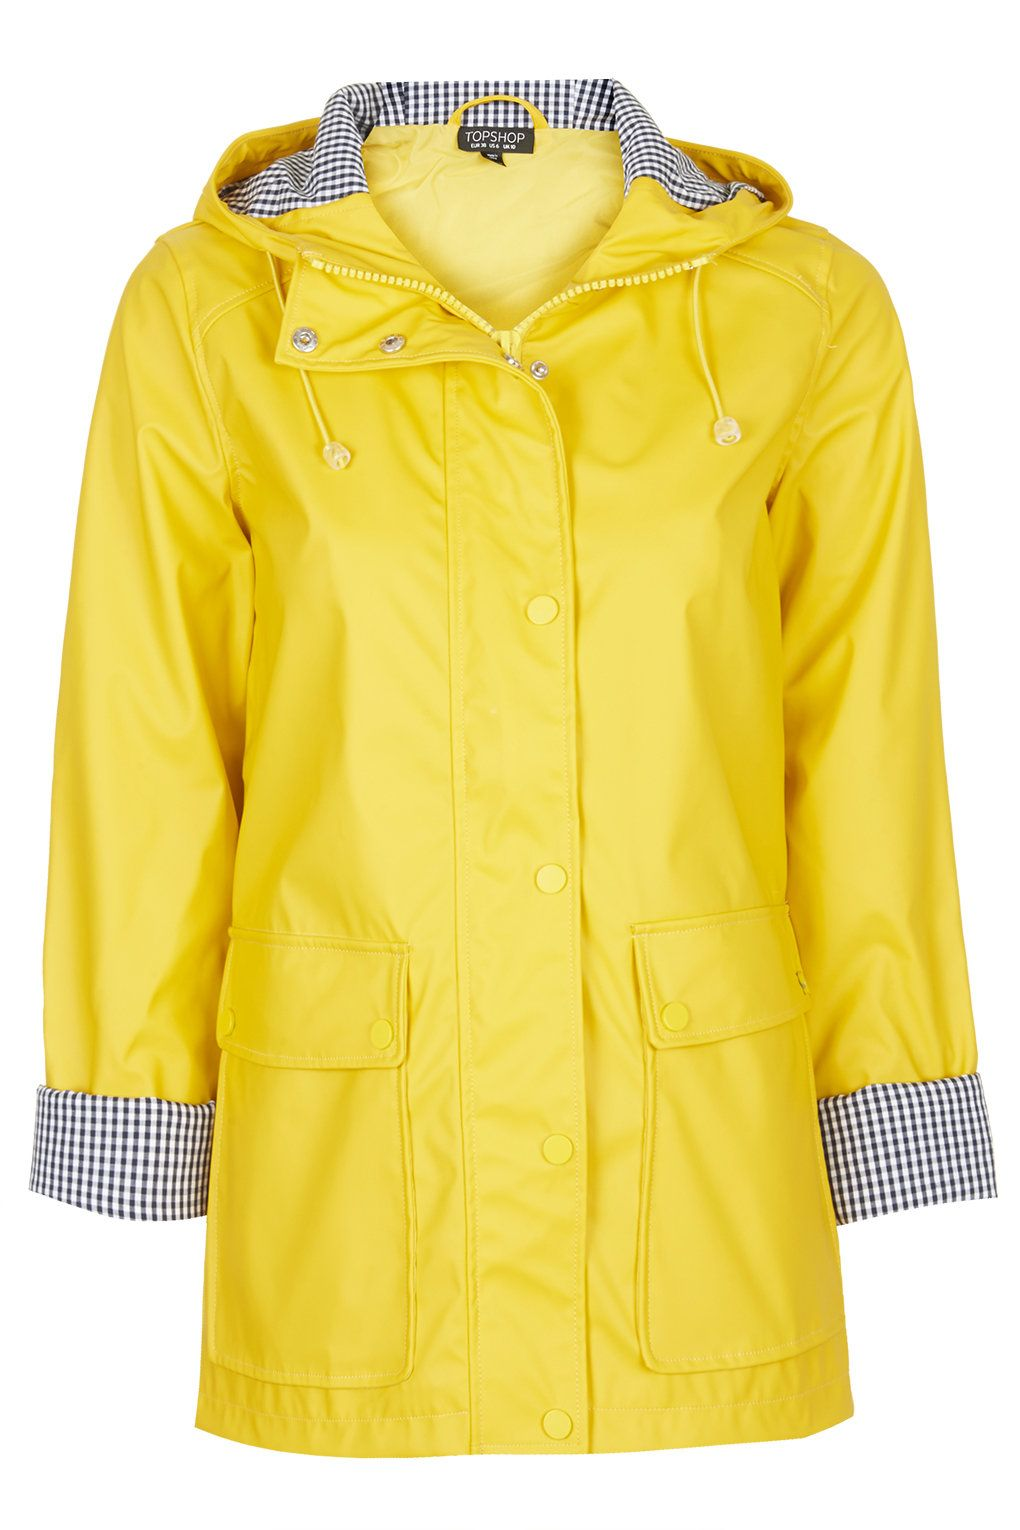 22f643c2e096 Yellow Plastic Mac - Jackets   Coats - Clothing - Topshop Europe ...